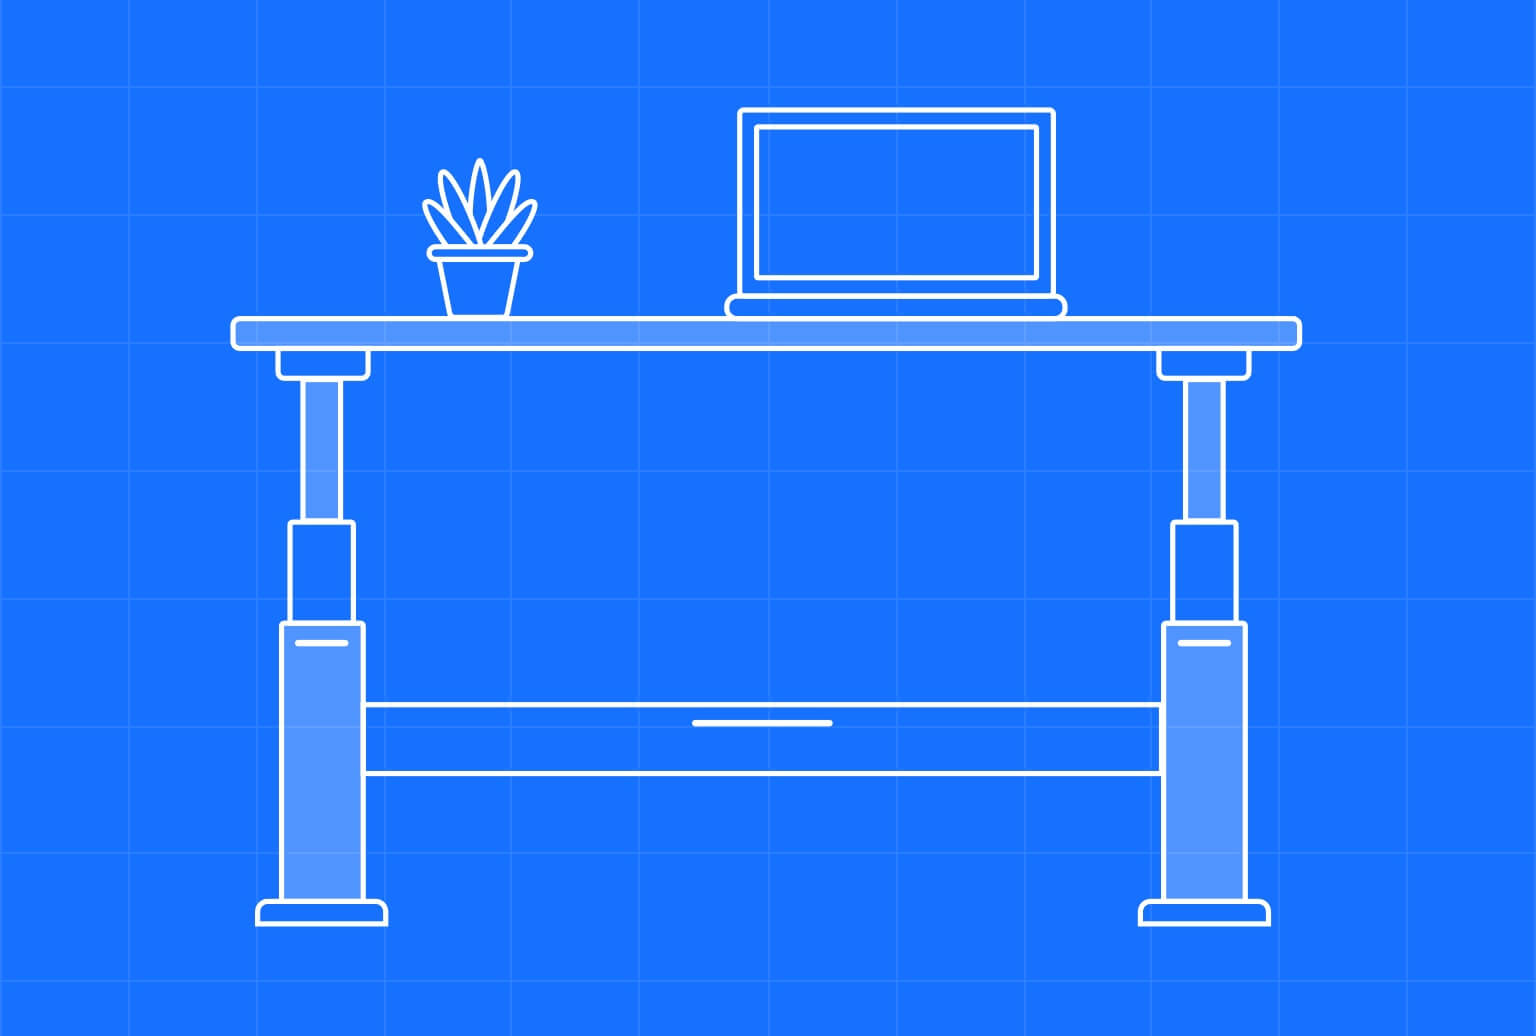 Simple outline of a standing desk with computer and plant on top. Illustration with blue background.